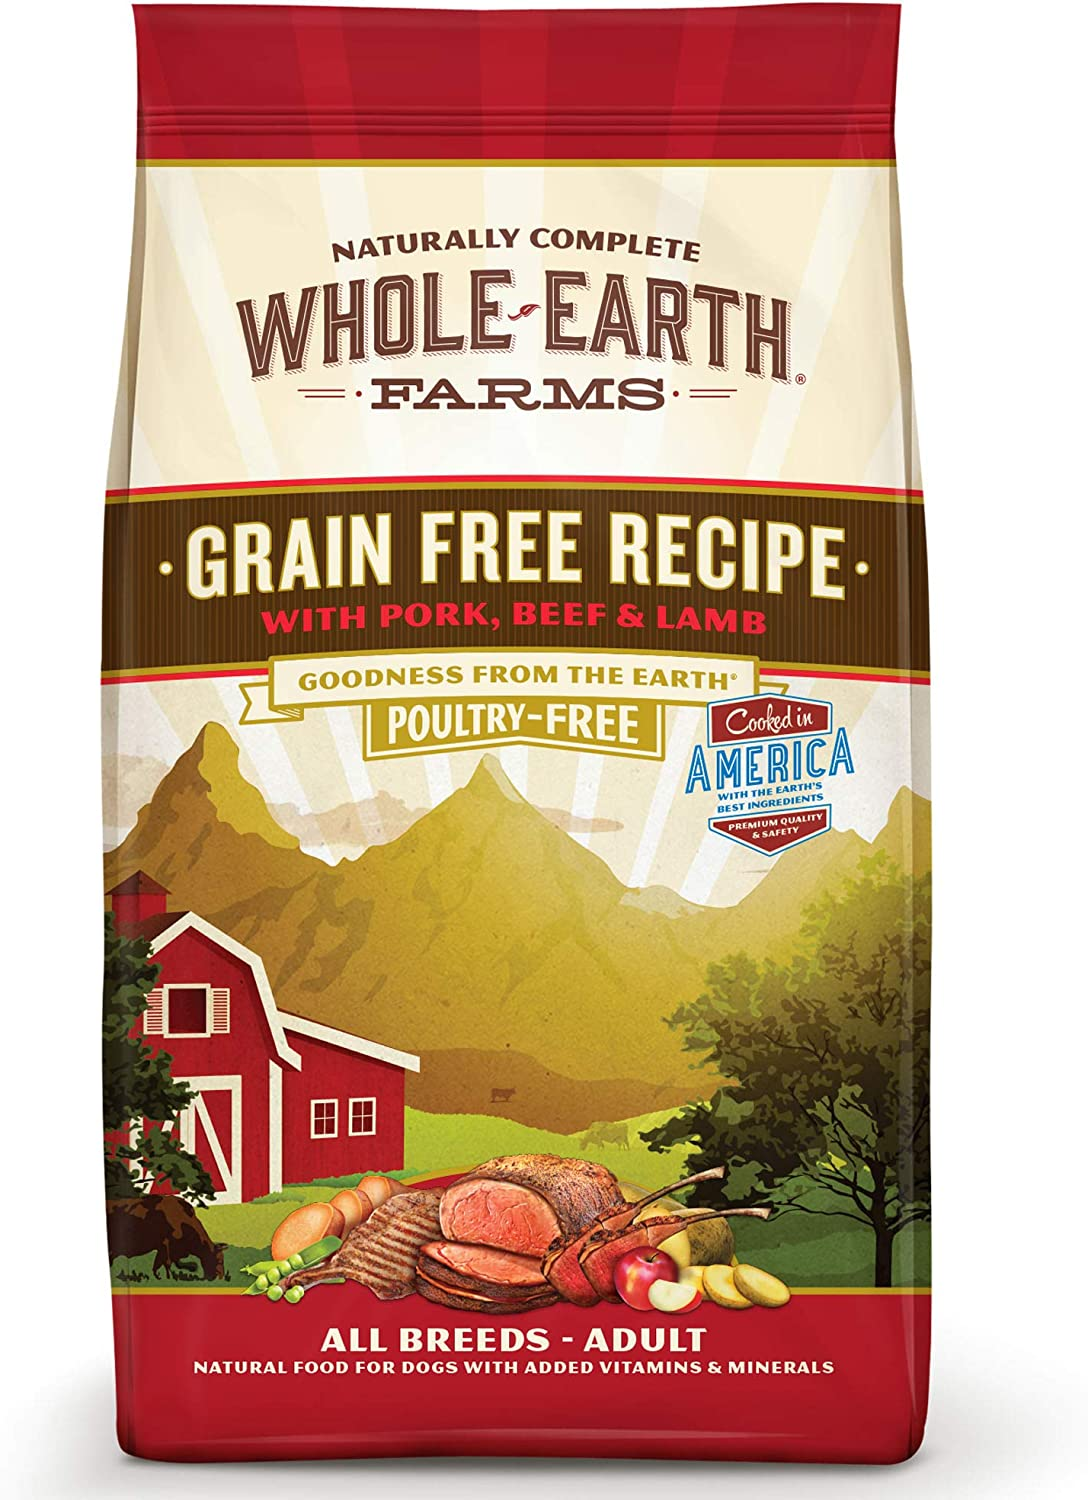 5. Whole Earth Farms Grain-Free Pork, Beef & Lamb Recipe